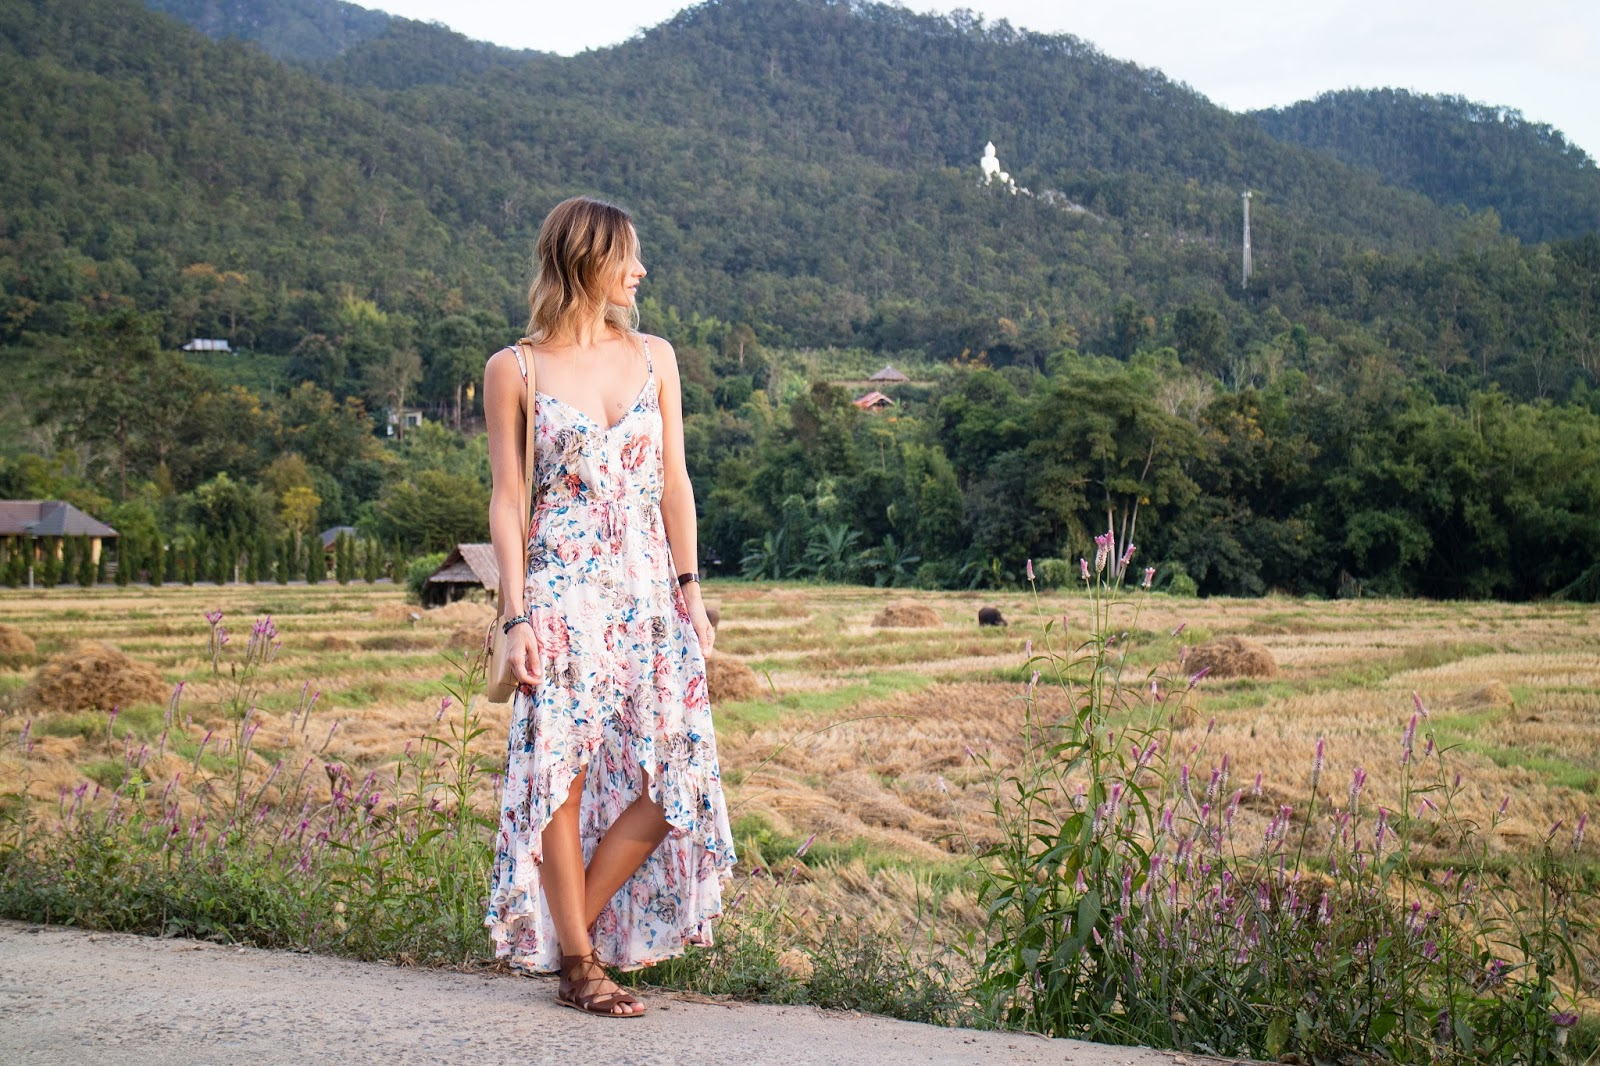 fashion and travel blogger, alison hutchinson is wearing an Auguste the Label floral dress in Pai, Thailand